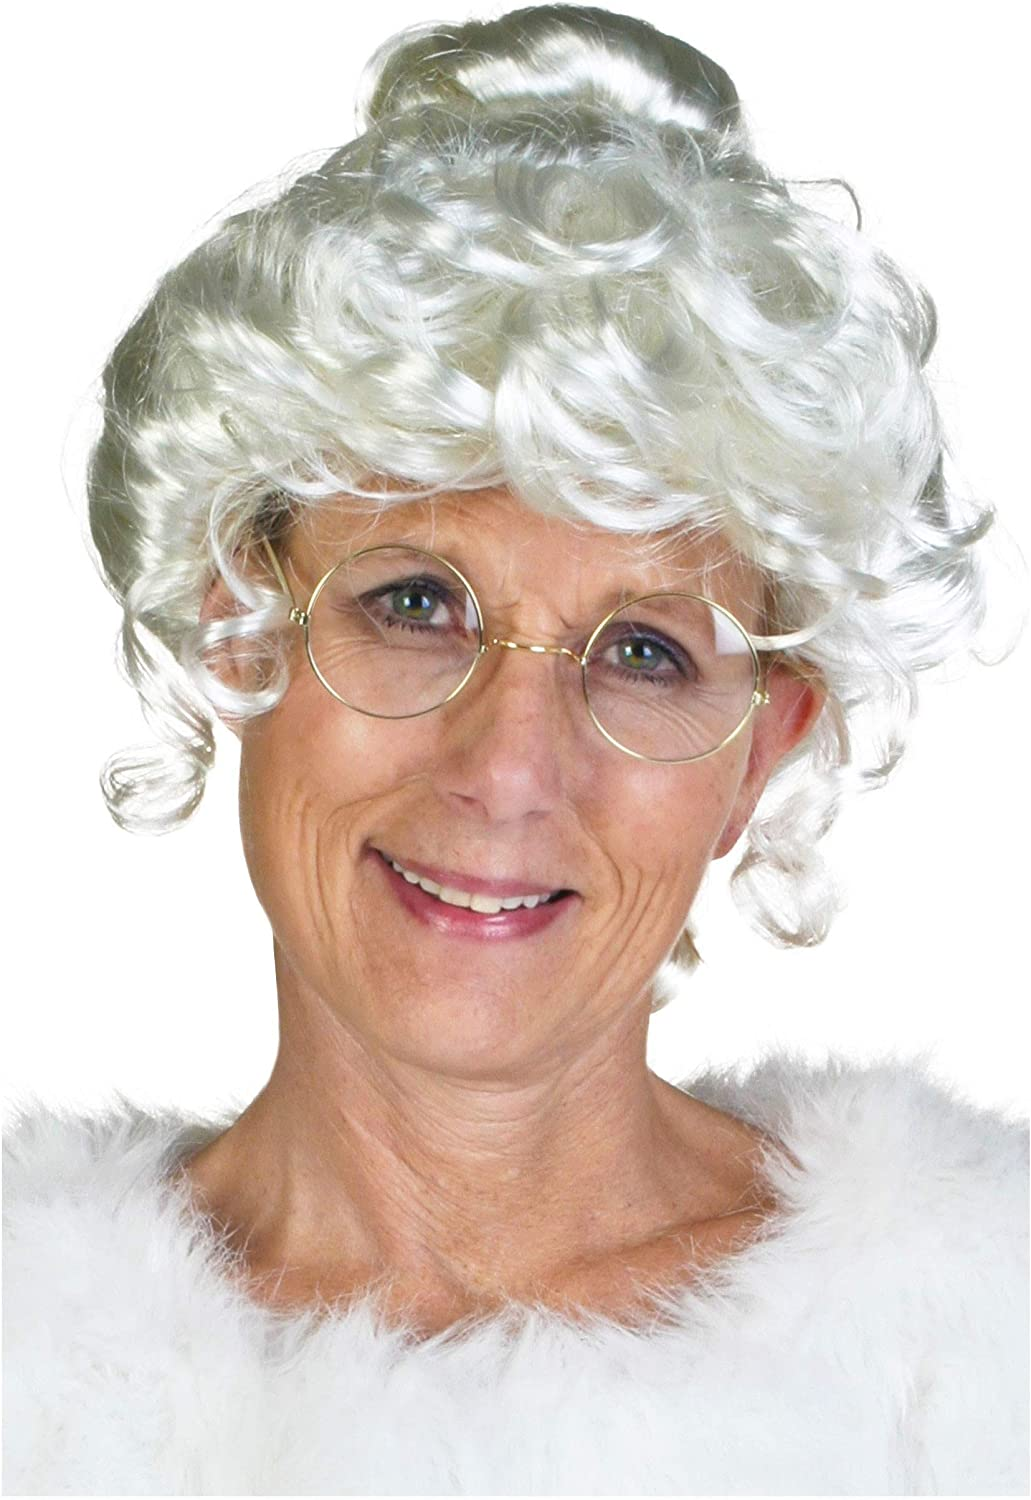 Adult size Deluxe Mrs Santa Claus Wig Christmas Holiday Wear Dress Up fnt